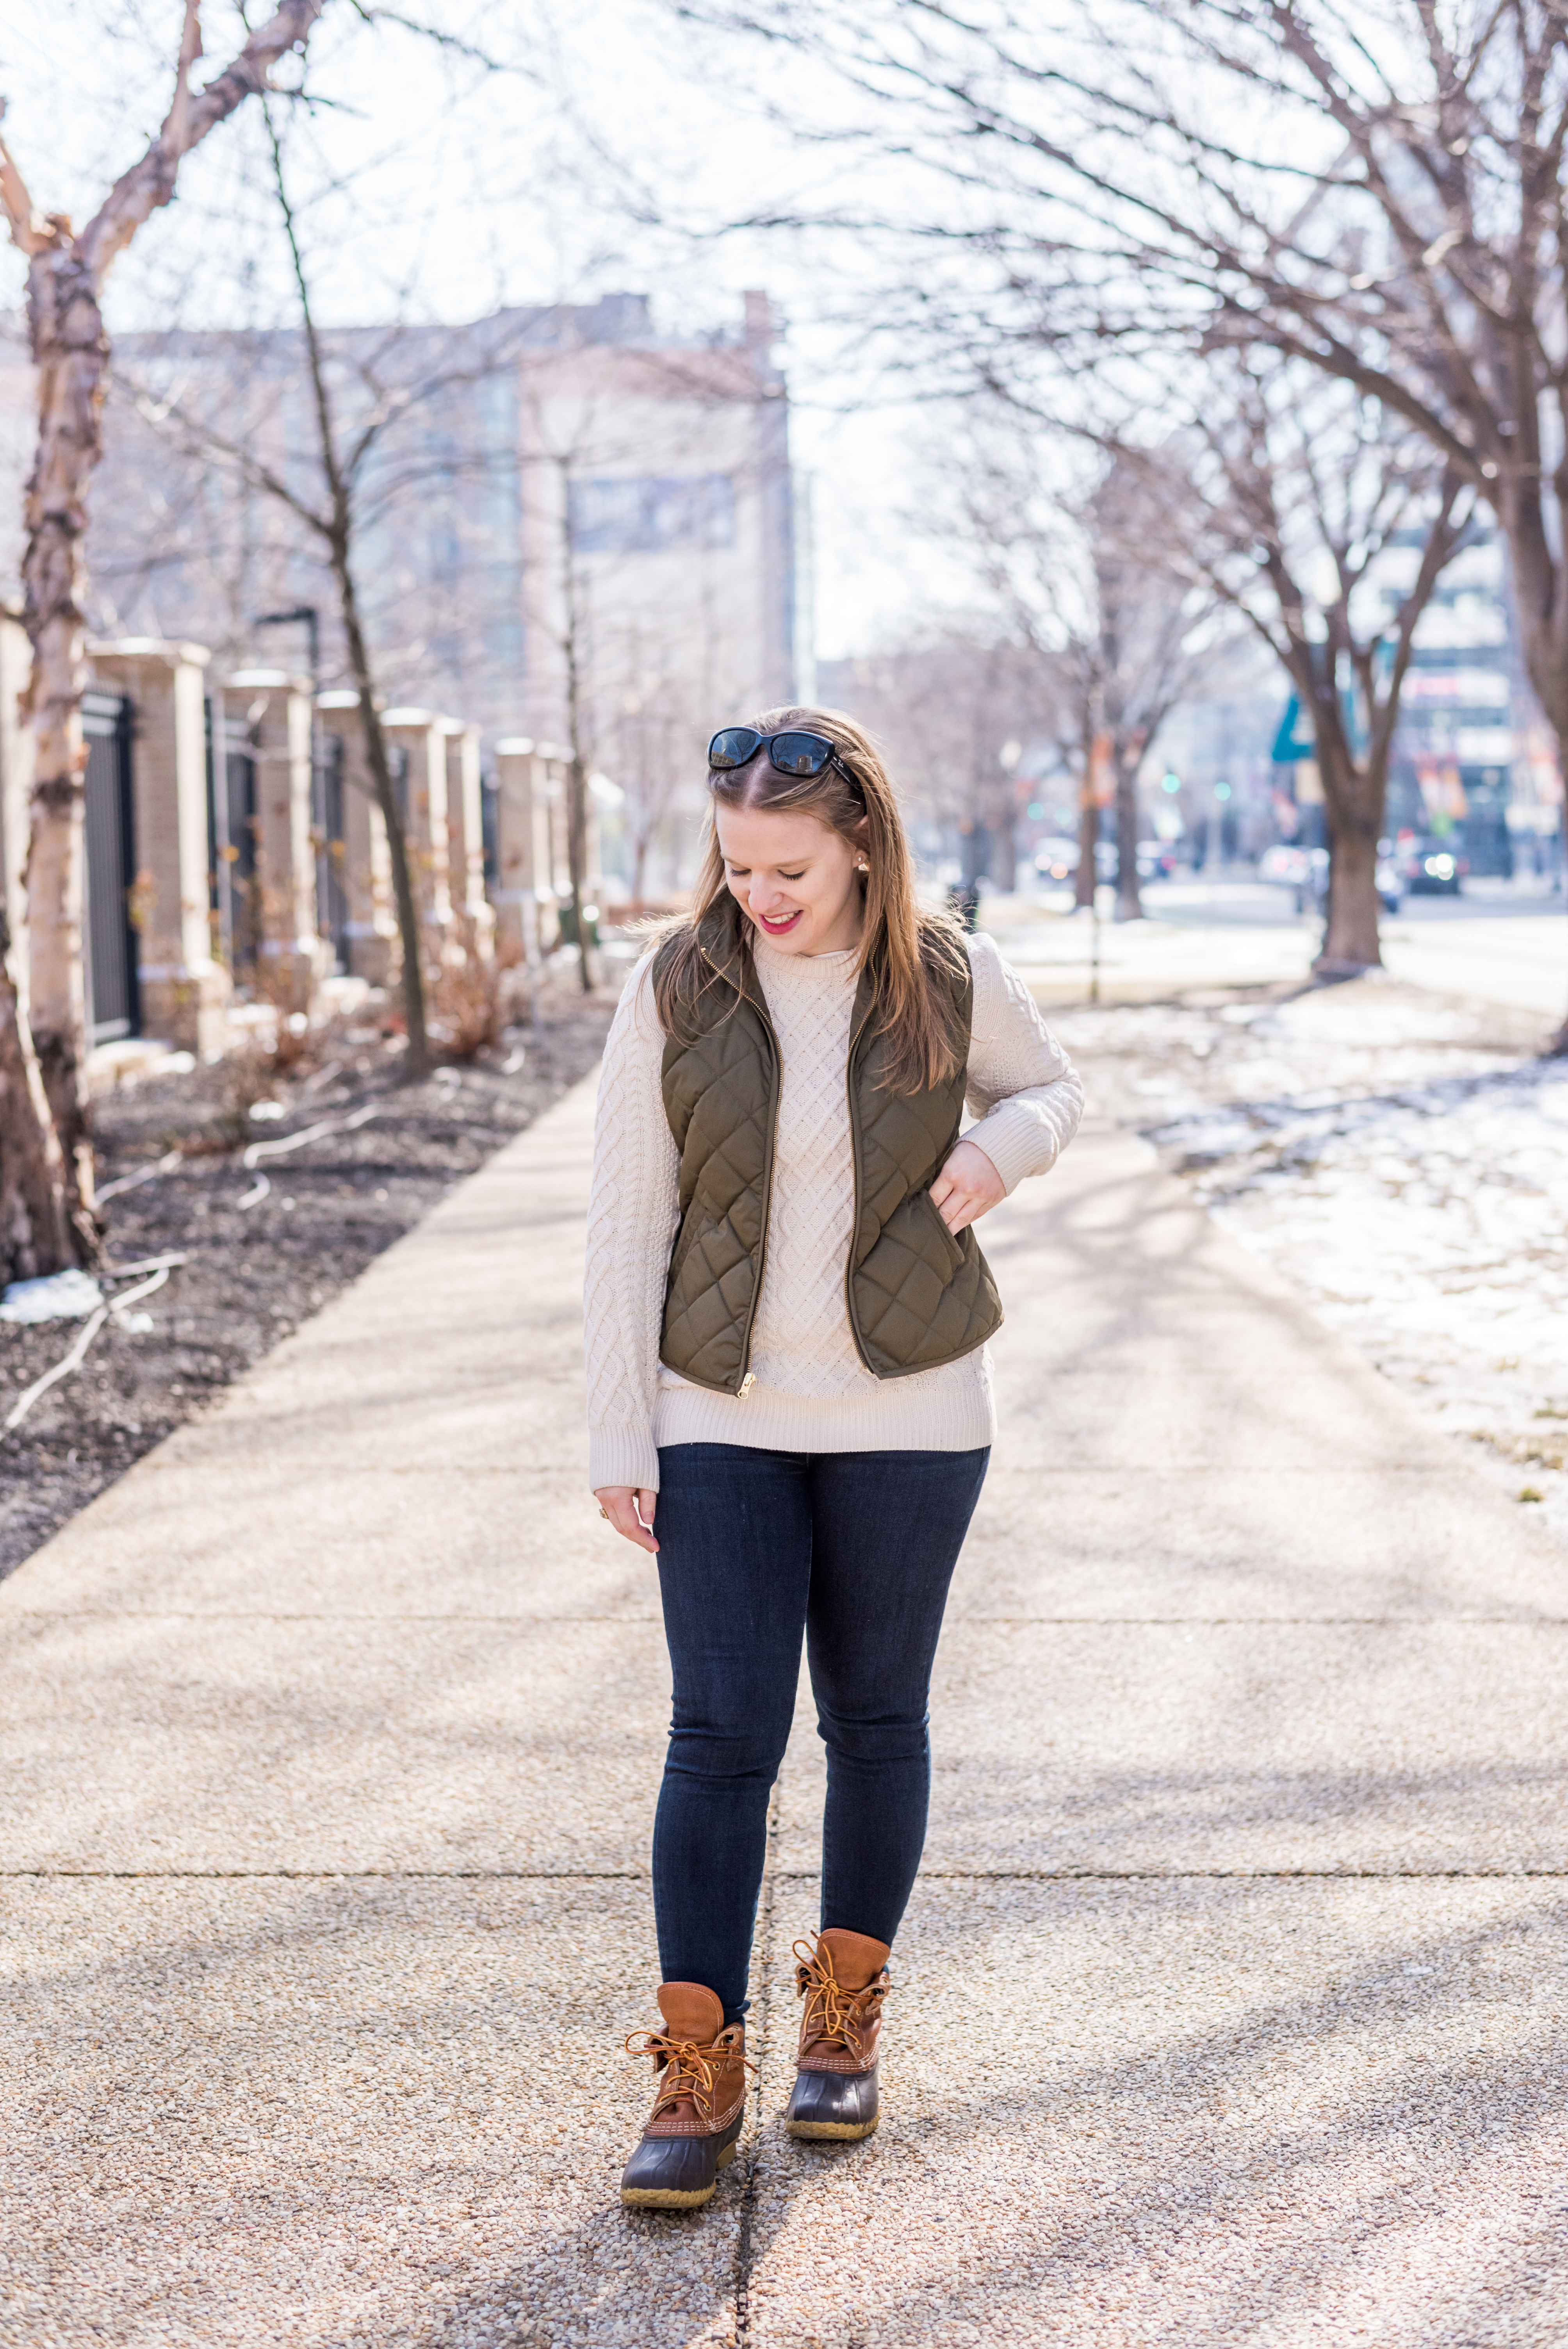 Style L.L. Bean Boots With Any Outfit